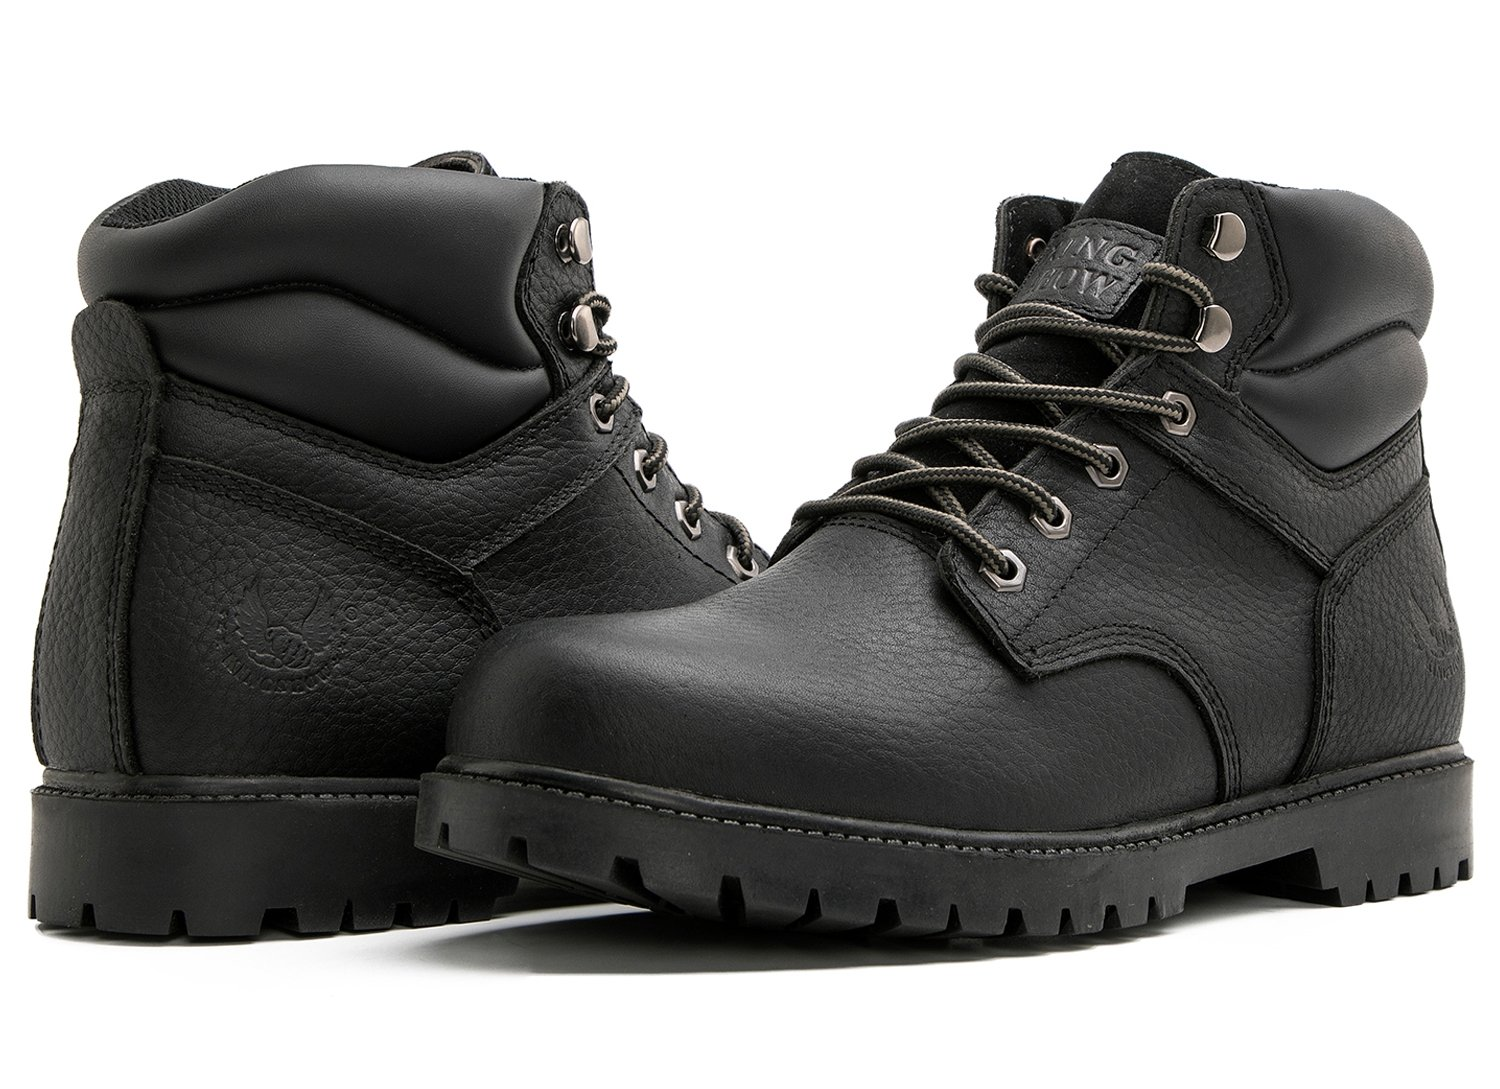 ac1005e3d16 Cheap Premium Boots, find Premium Boots deals on line at Alibaba.com